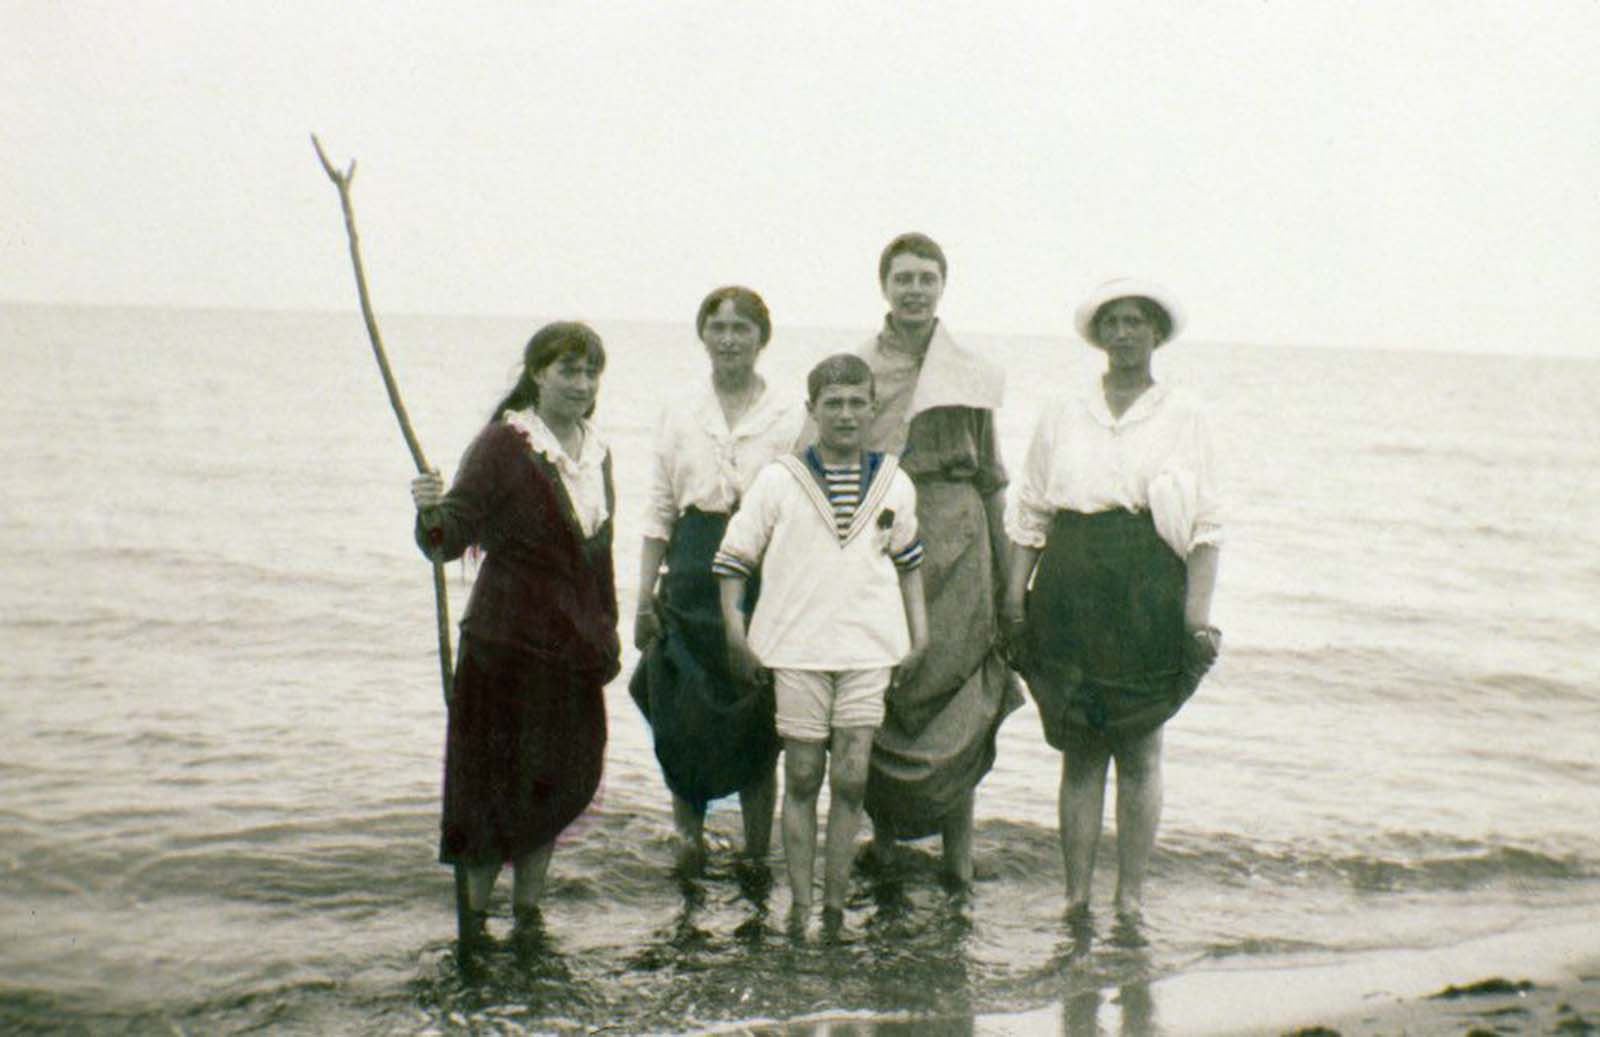 Maria, Olga , Alexei, an unidentified woman and Tatiana Romanov.